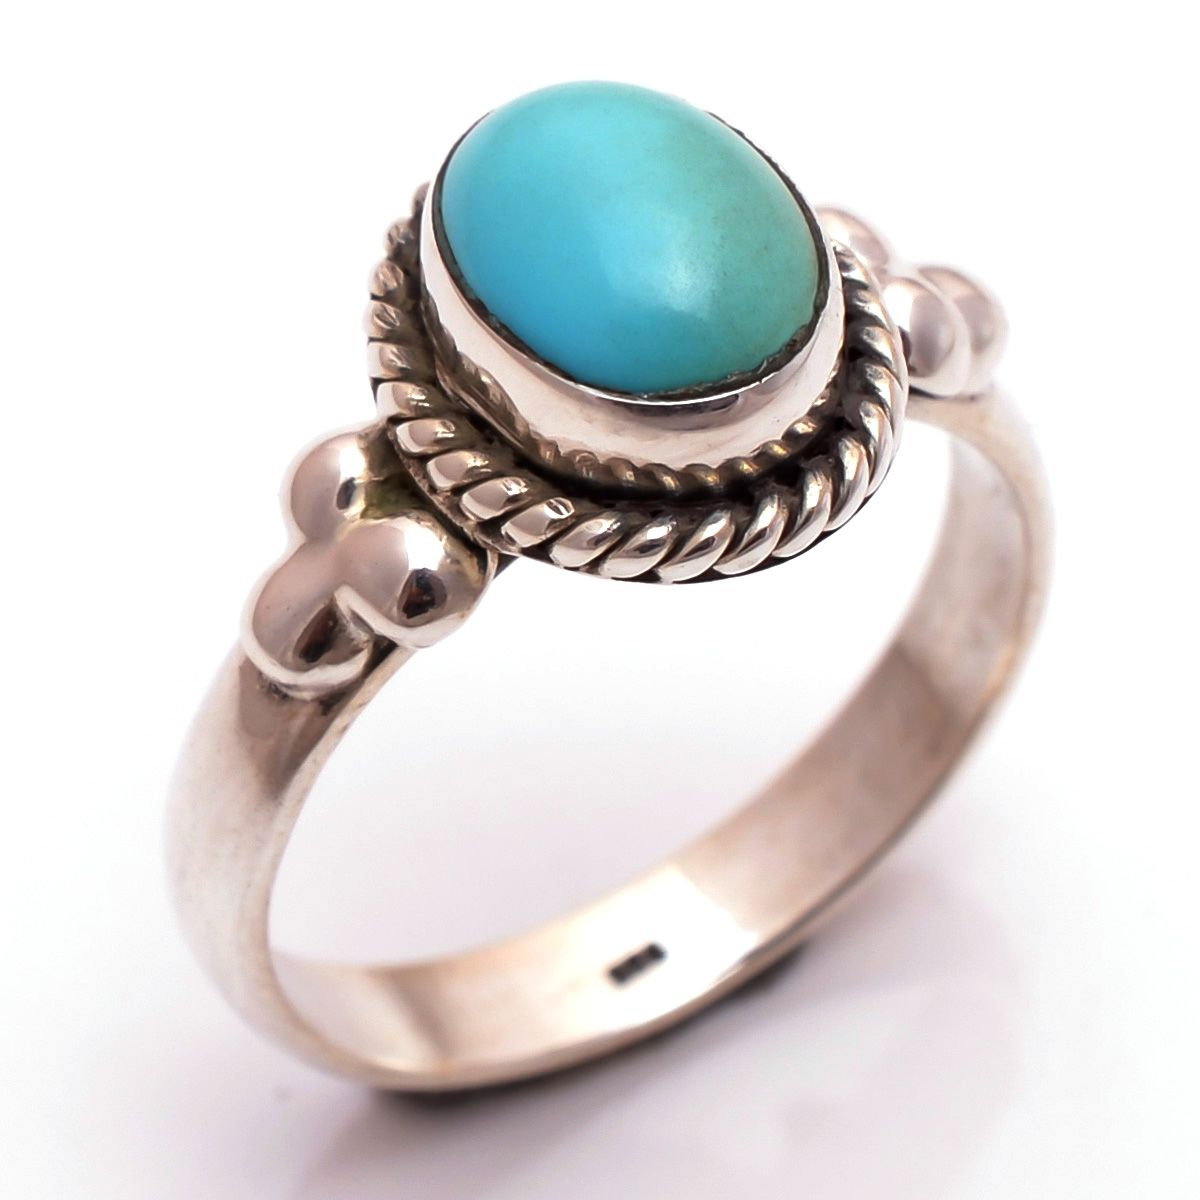 Sleeping Beauty Turquoise Gemstone 925 Sterling Silver Ring Size 8.5